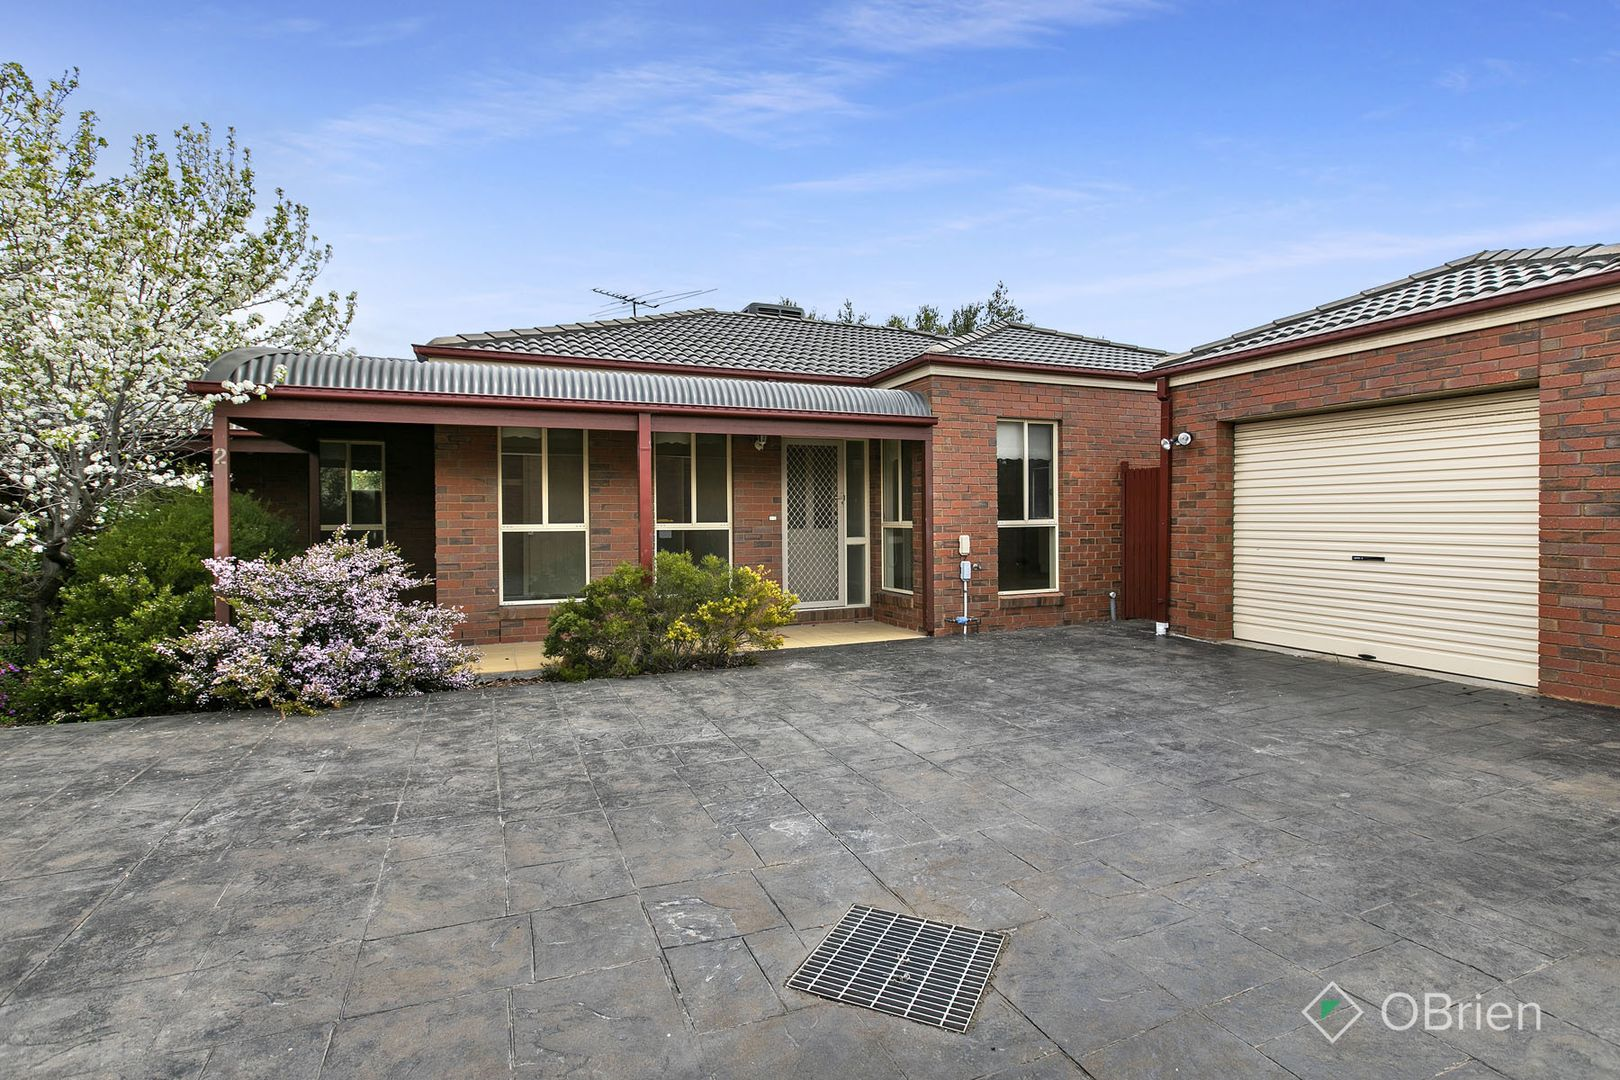 2/4 Hyperno Court, Keilor Downs VIC 3038, Image 0